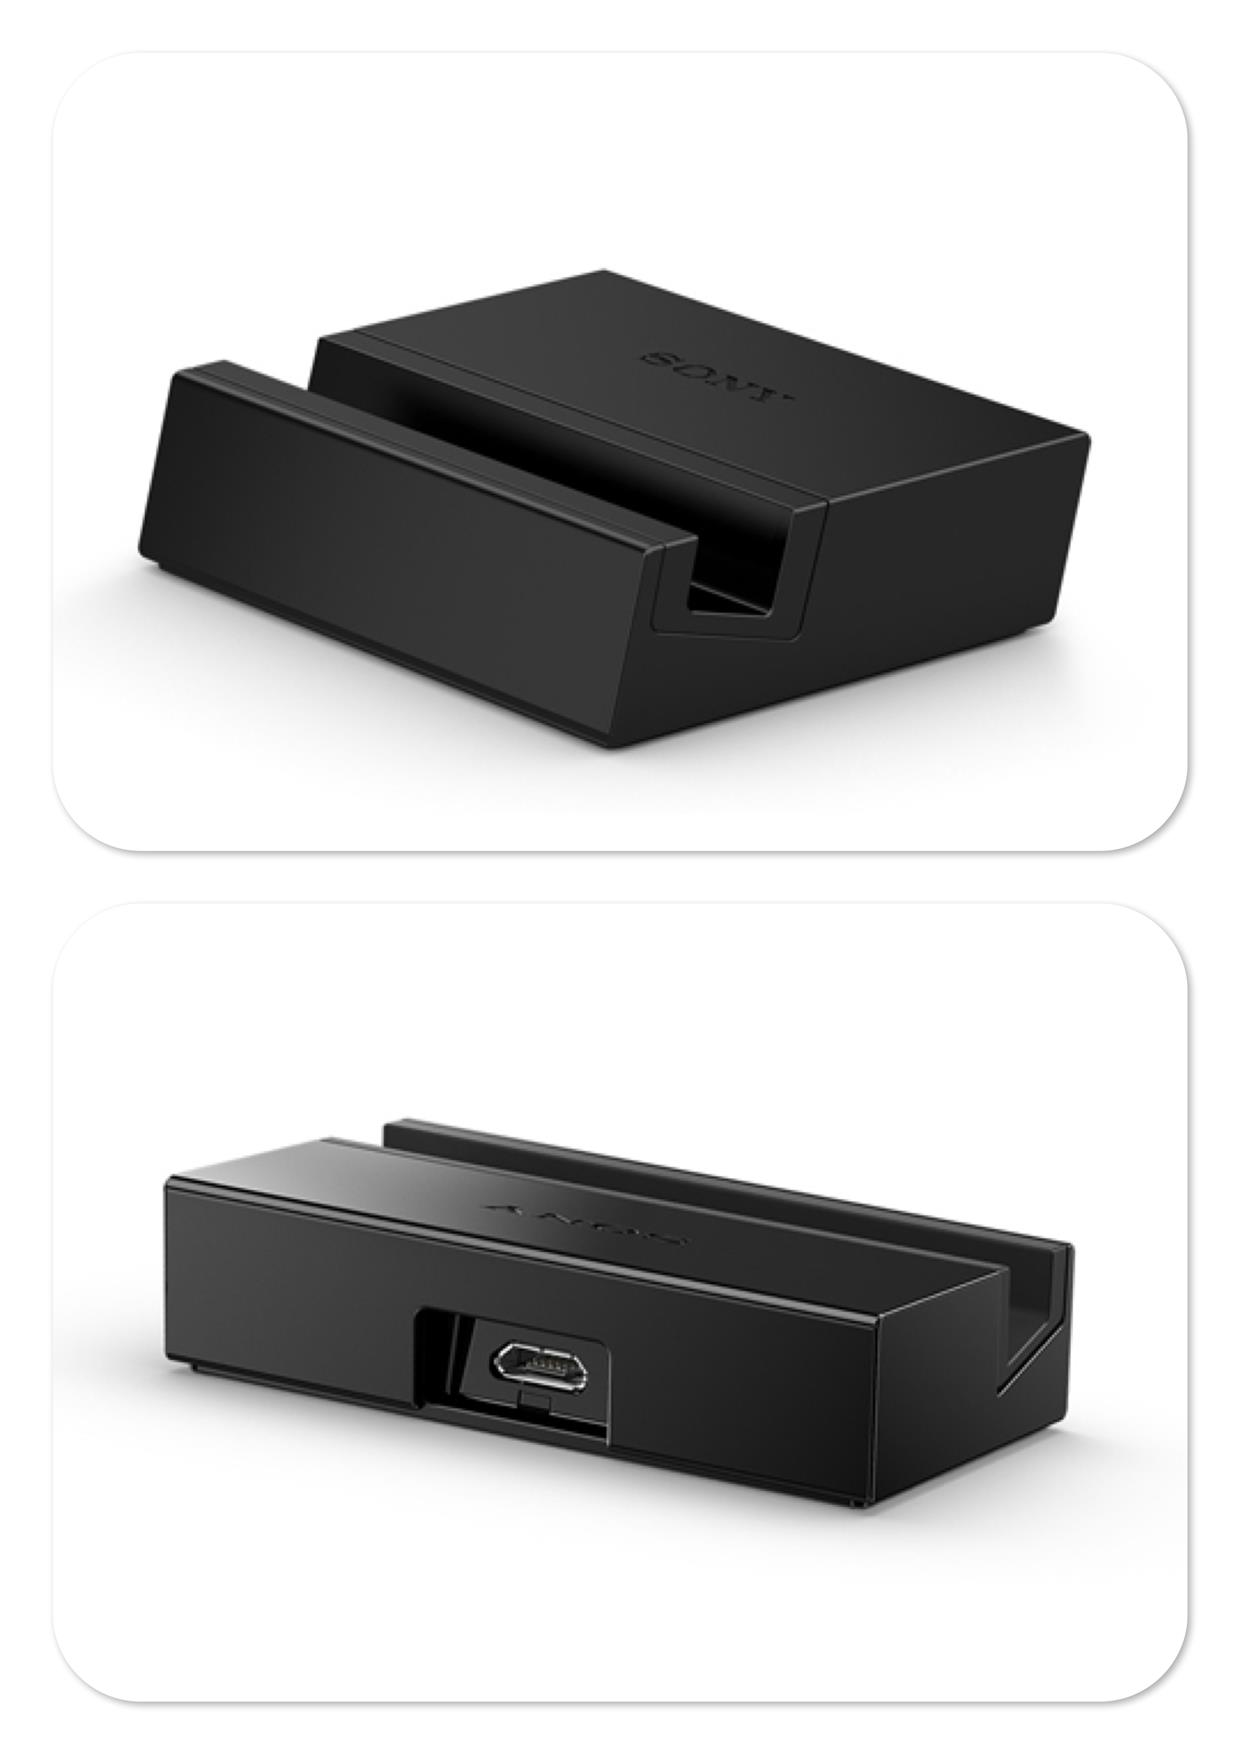 Bdotcom = SONY Xperia Z1 Compact Magnetic Charging Dock DK 32 Original